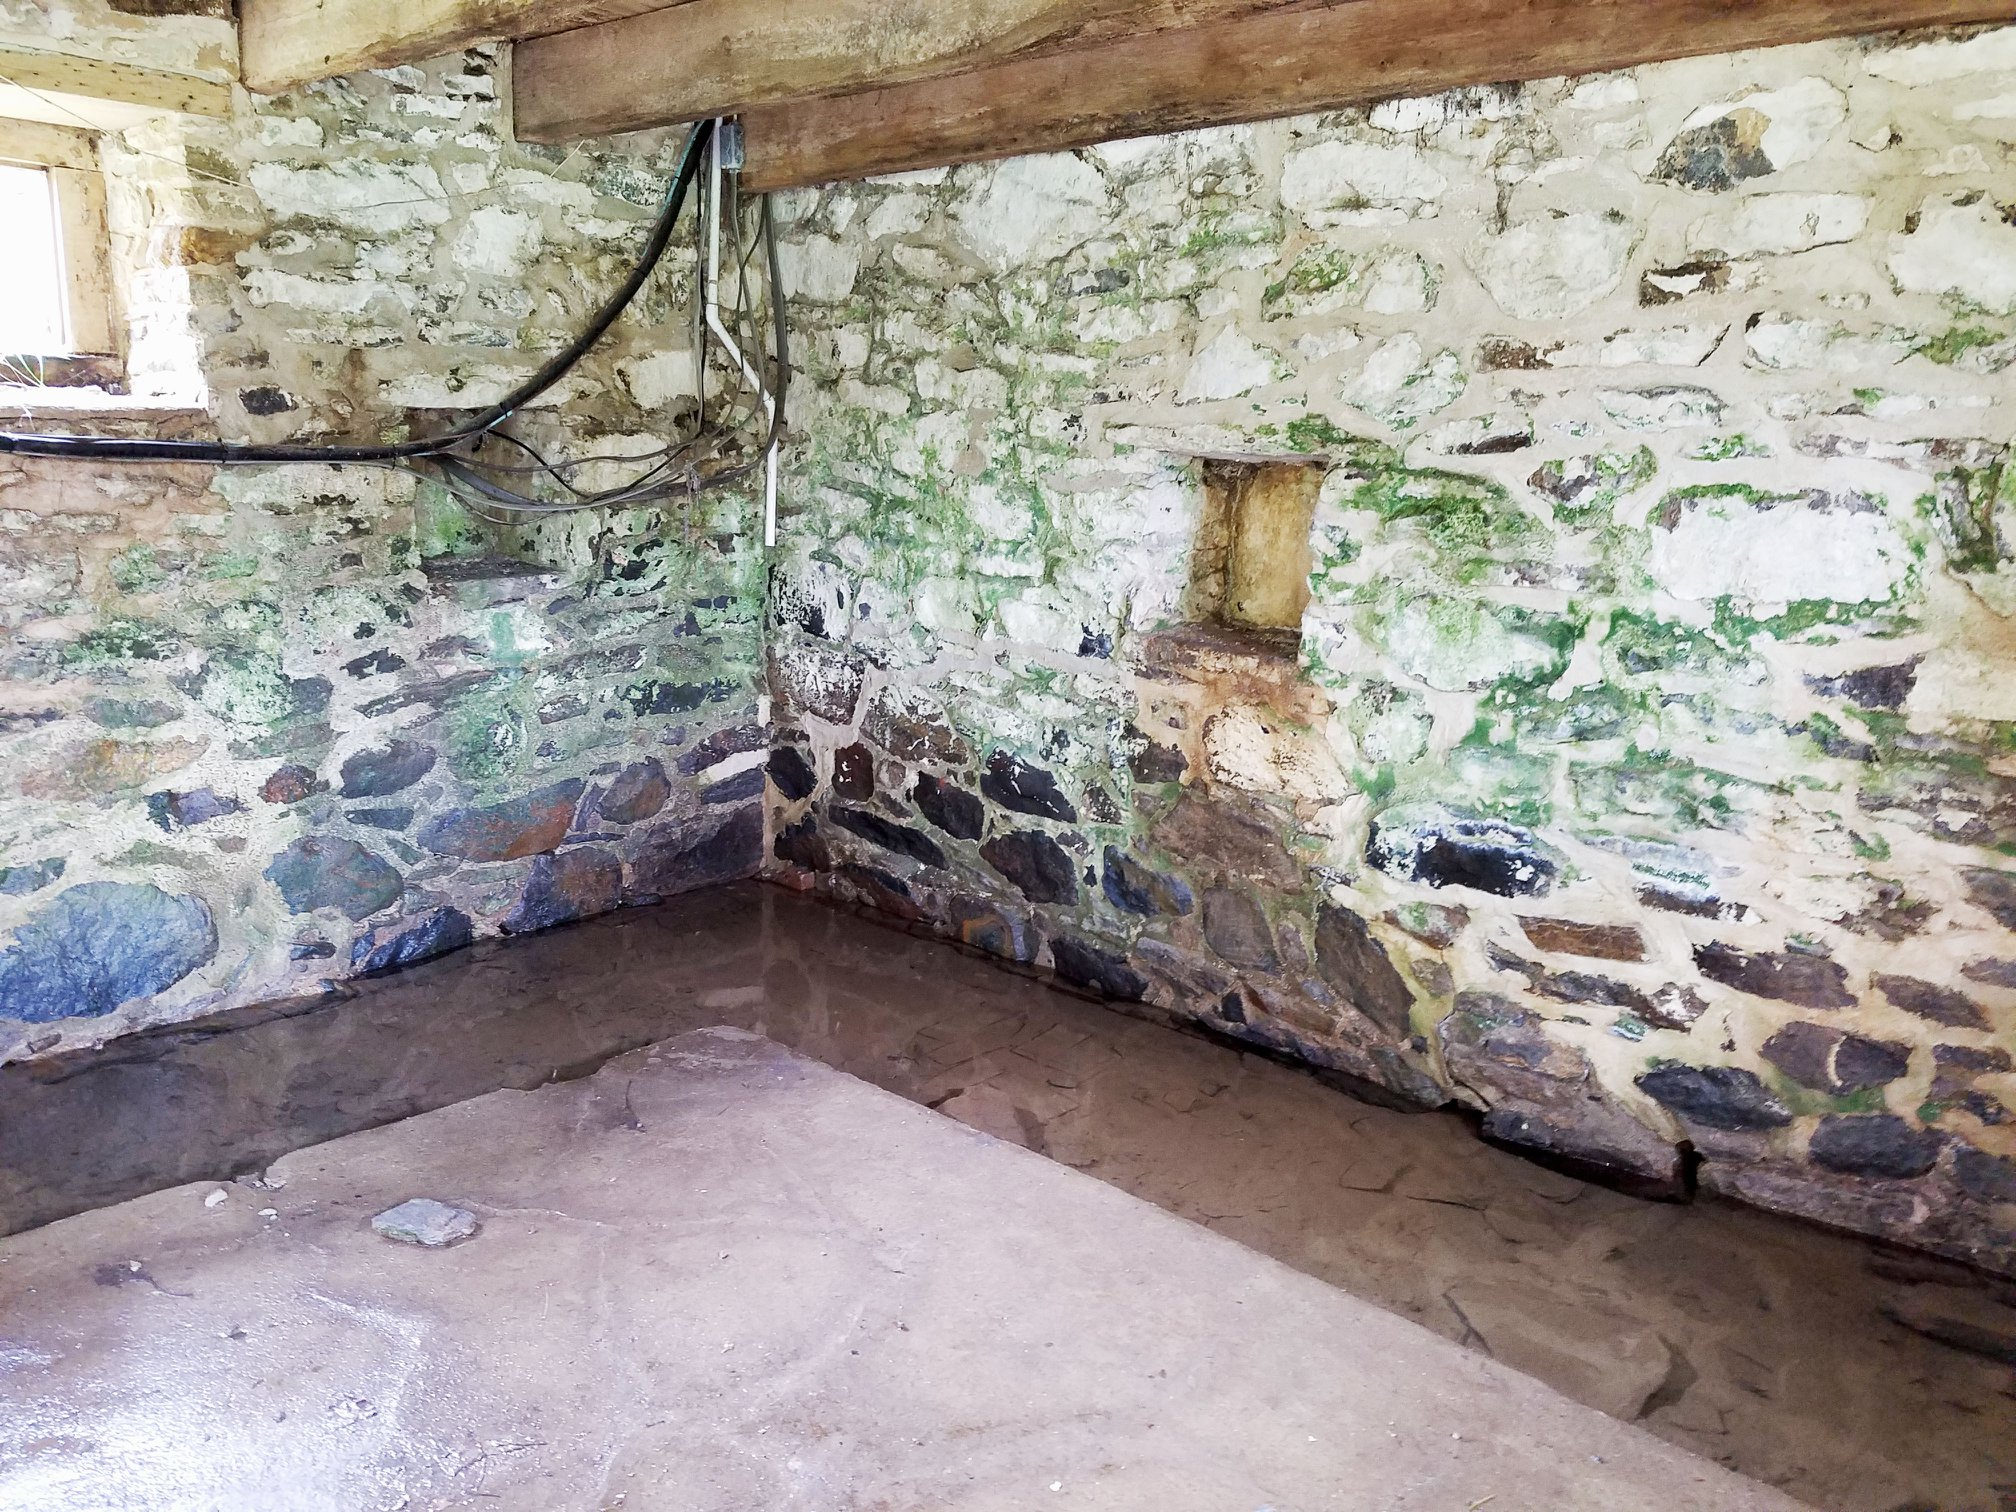 The first floor of the springhouse with the spring still flowing through it